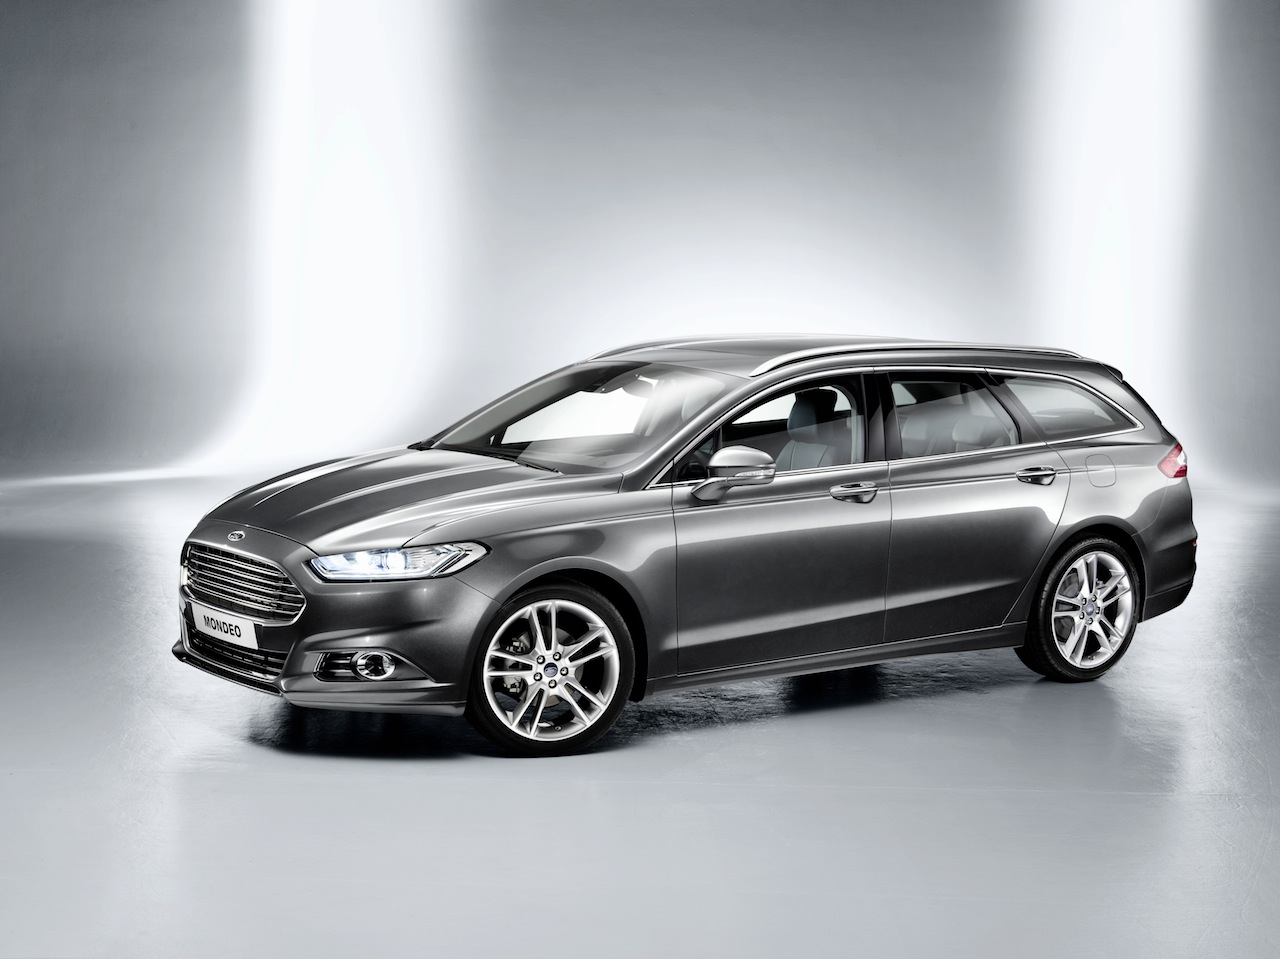 Ford Mondeo 1998 photo - 9